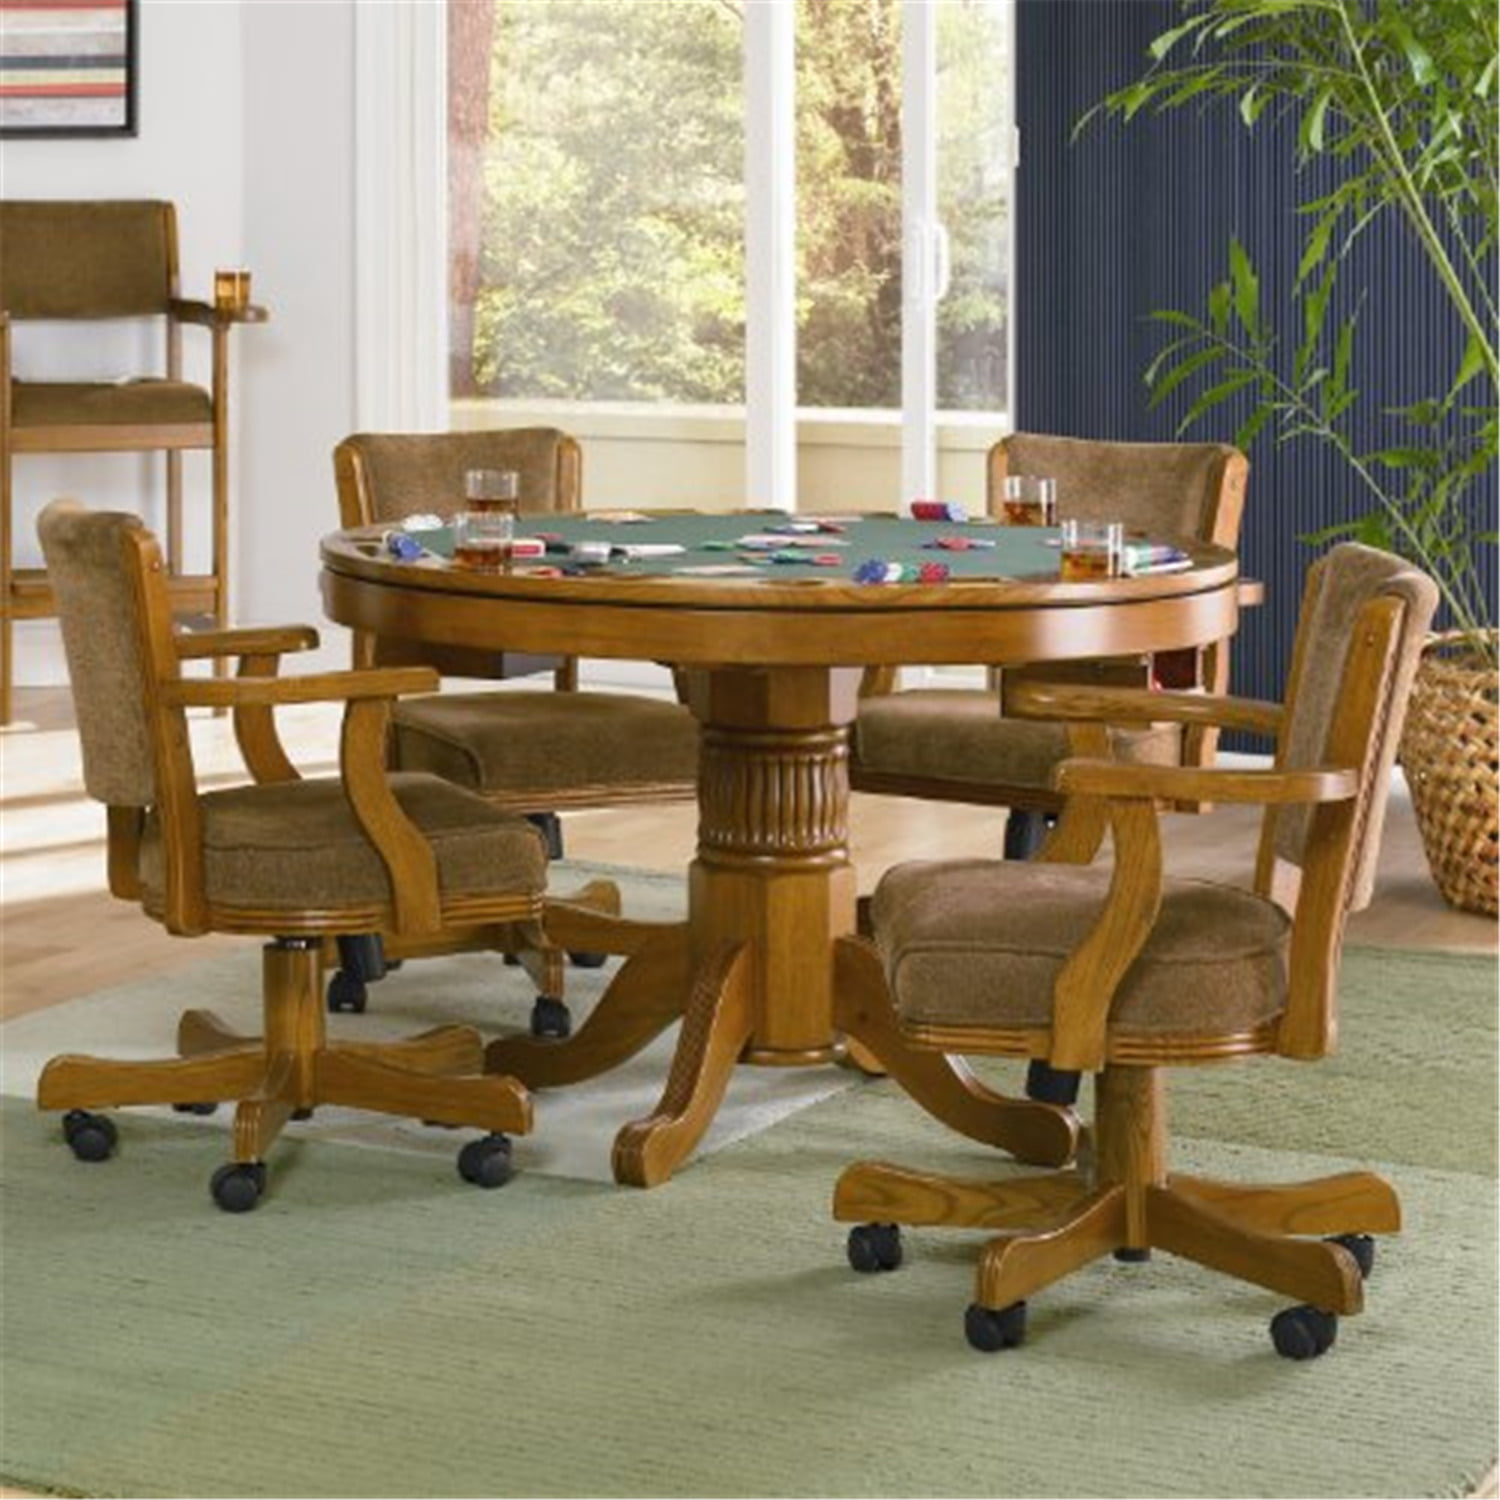 Coaster Mitc 5 Piece 3 In 1 Game, Round Gaming Table With Chairs